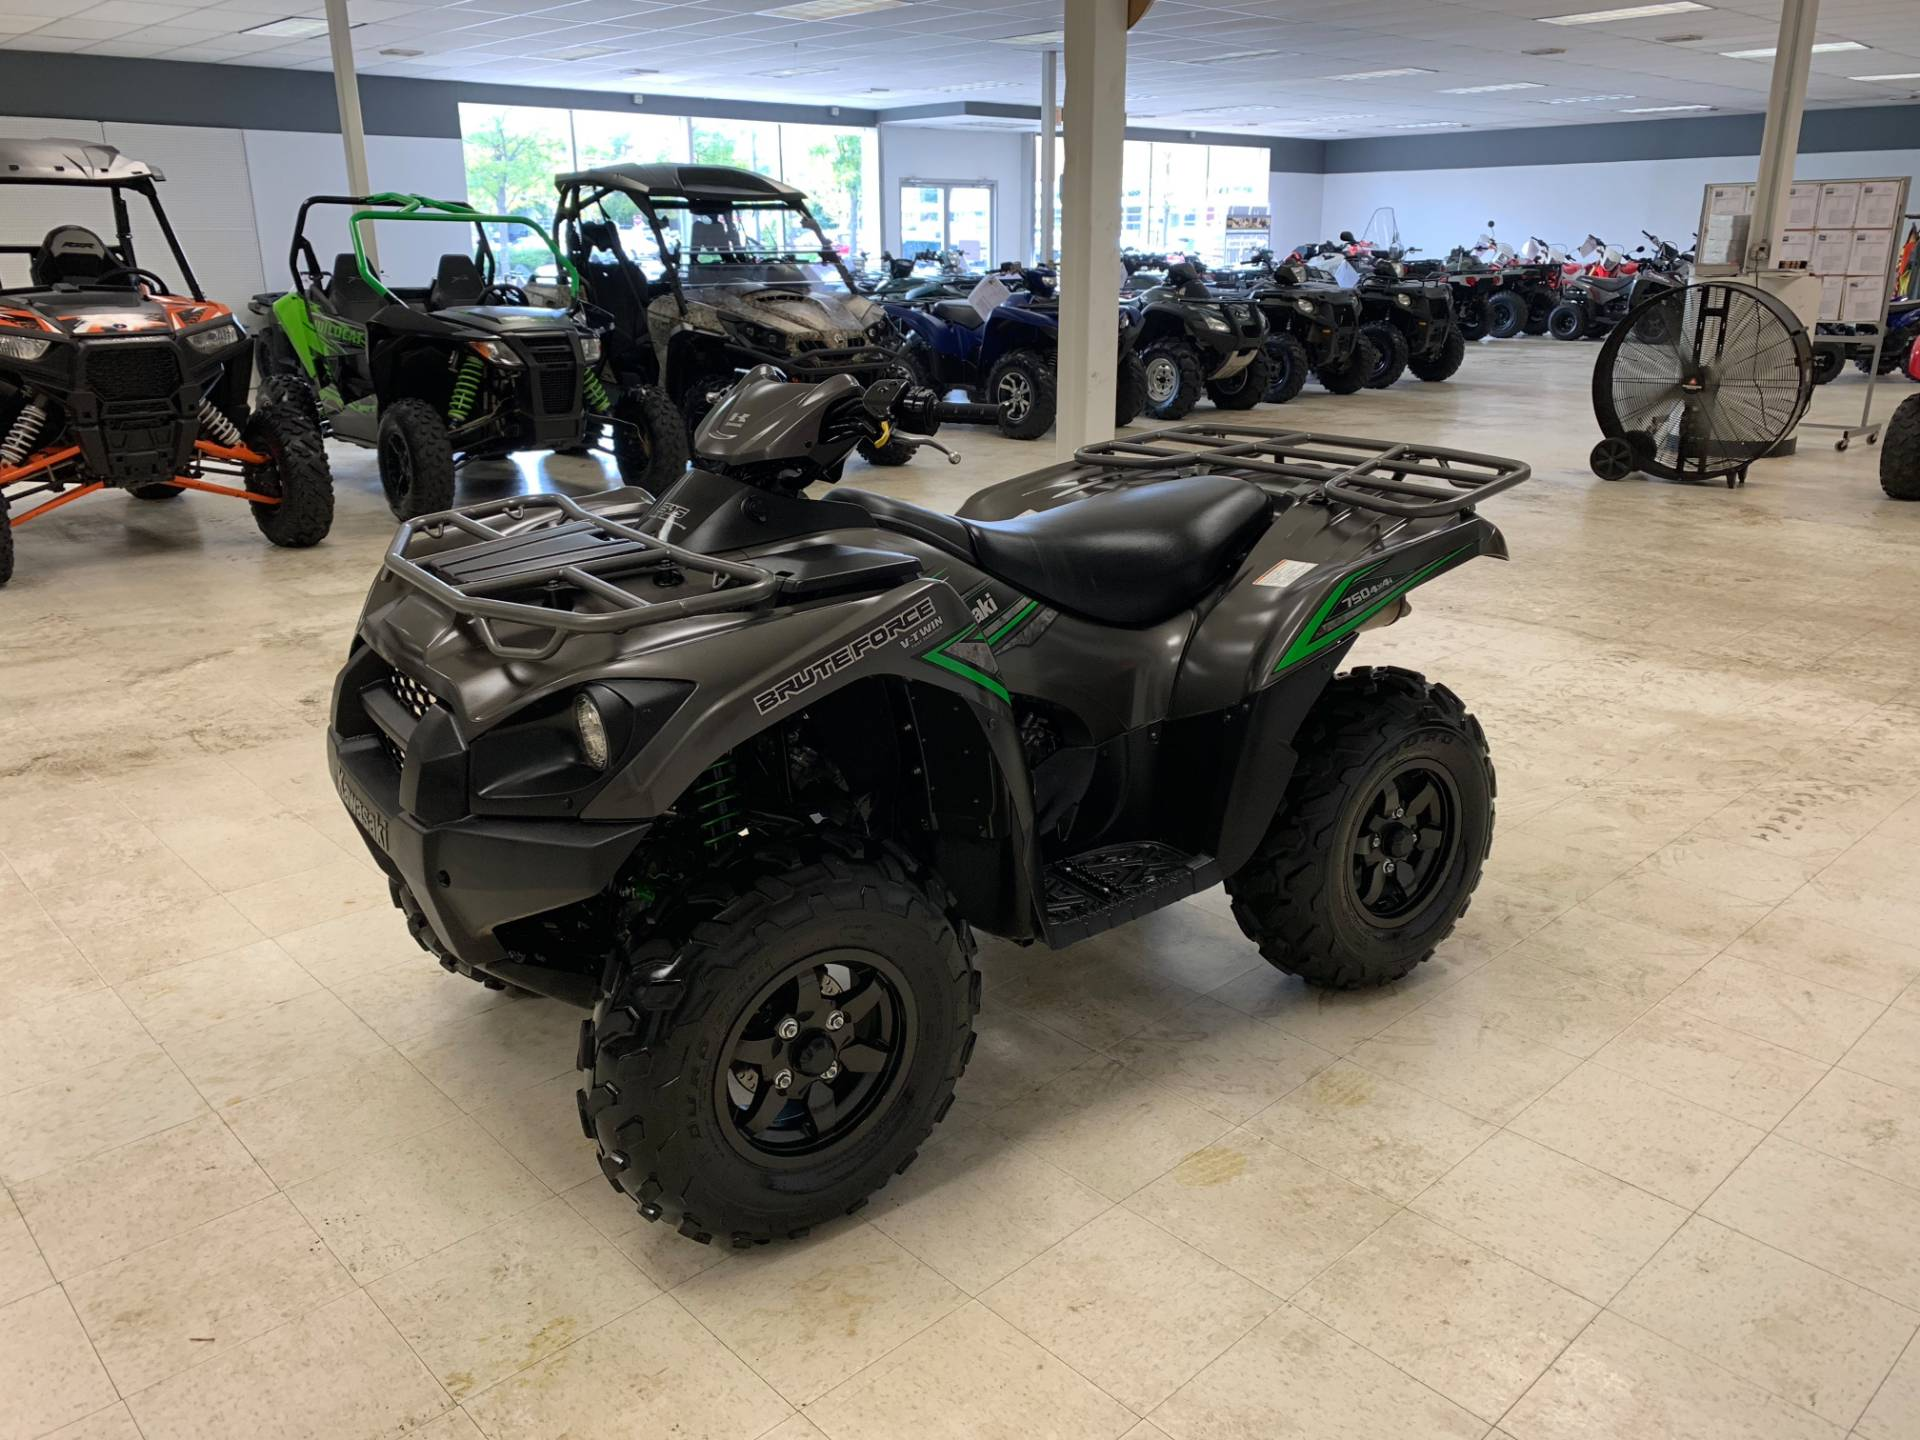 2017 Kawasaki Brute Force 750 4x4i EPS 5